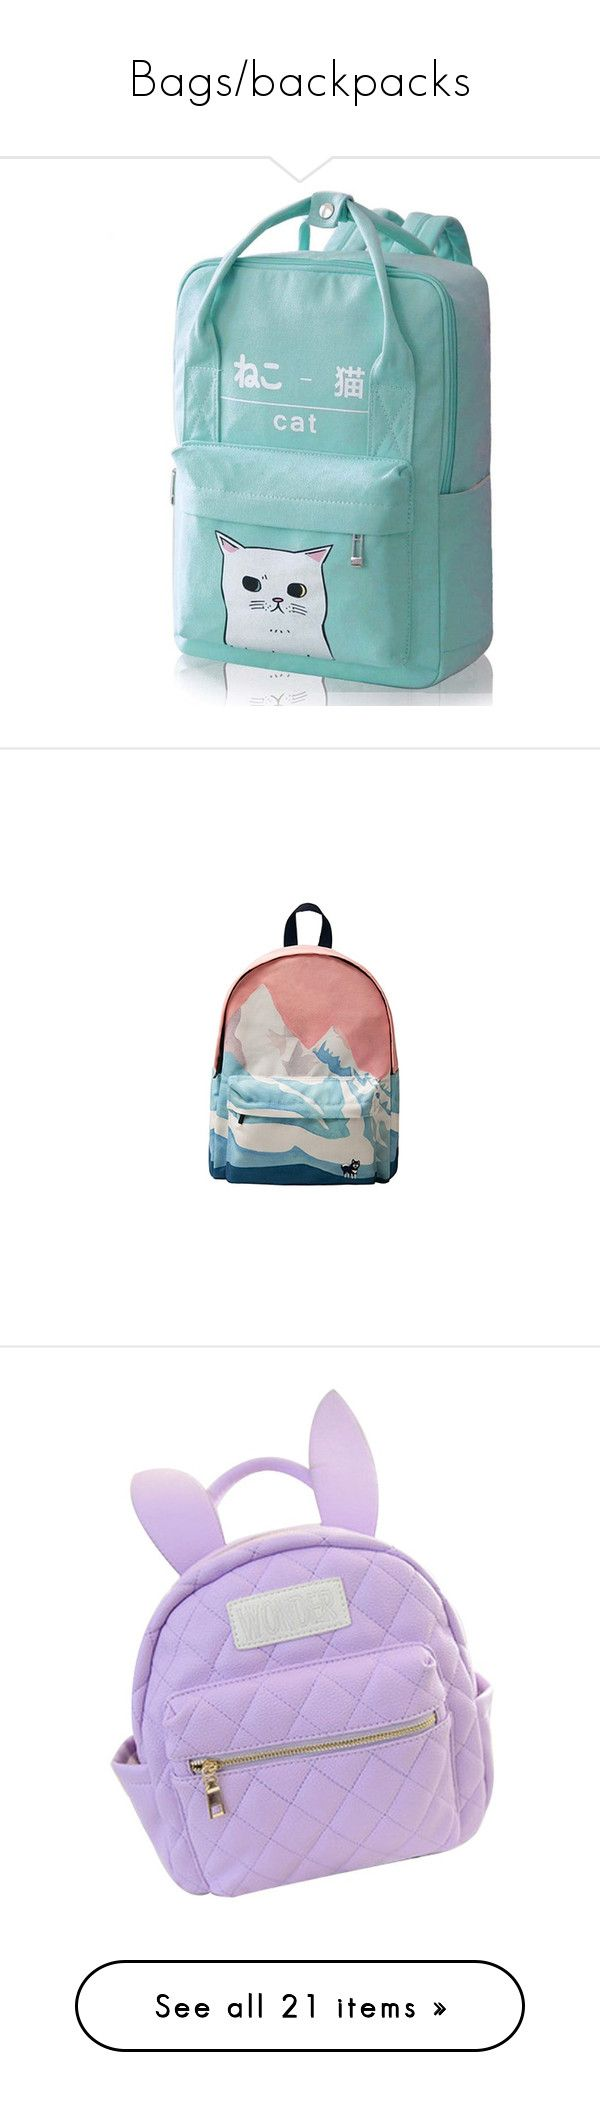 """""""Bags/backpacks"""" by gayhope ❤ liked on Polyvore featuring bags, backpacks, backpack, pastel, knapsack bag, day pack backpack, pastel backpack, daypack bag, day pack rucksack and accessories"""